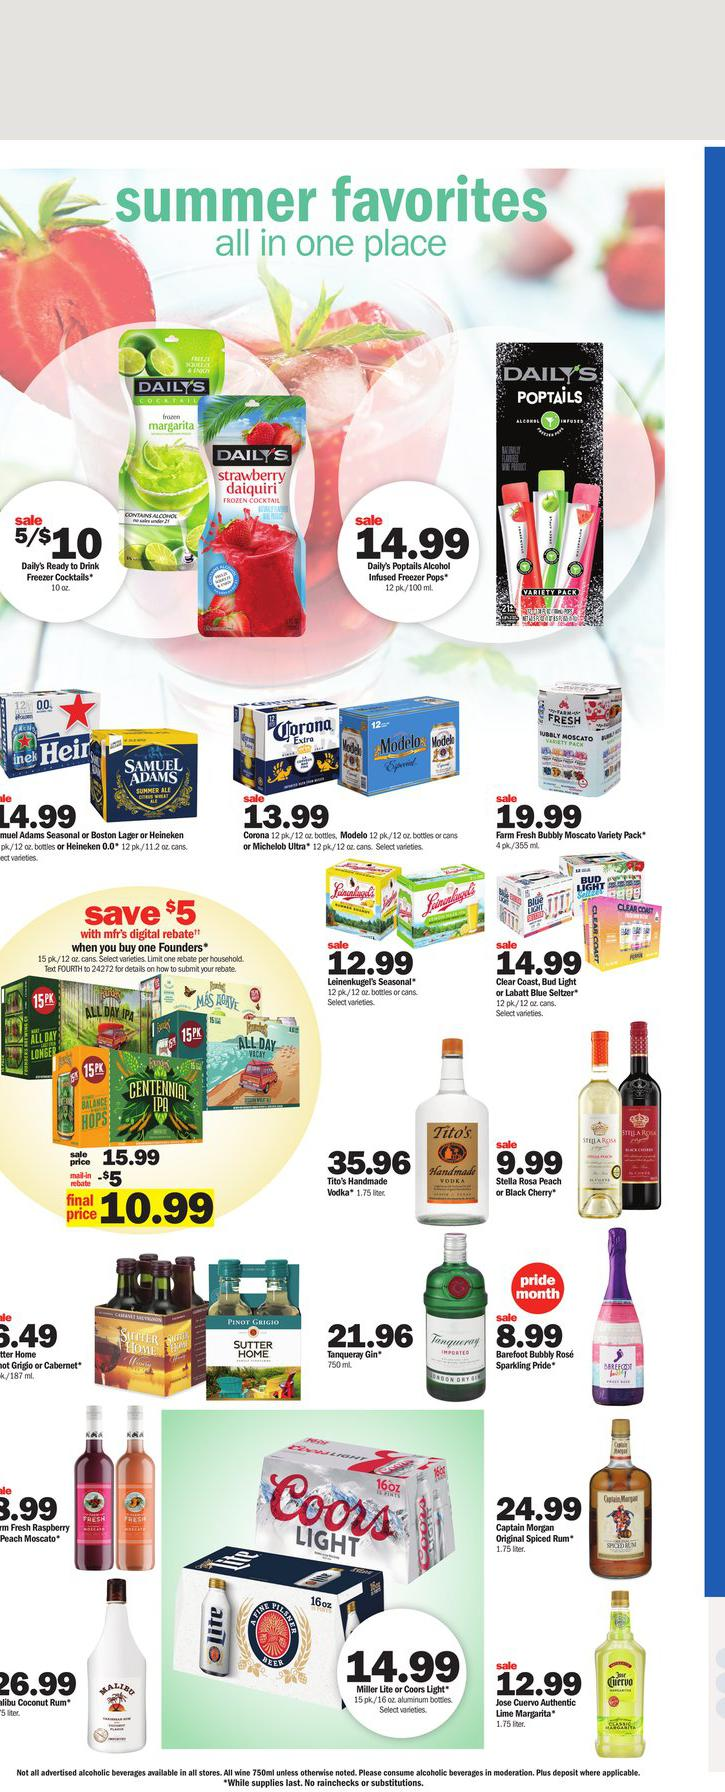 06.06.2021 Meijer ad 12. page